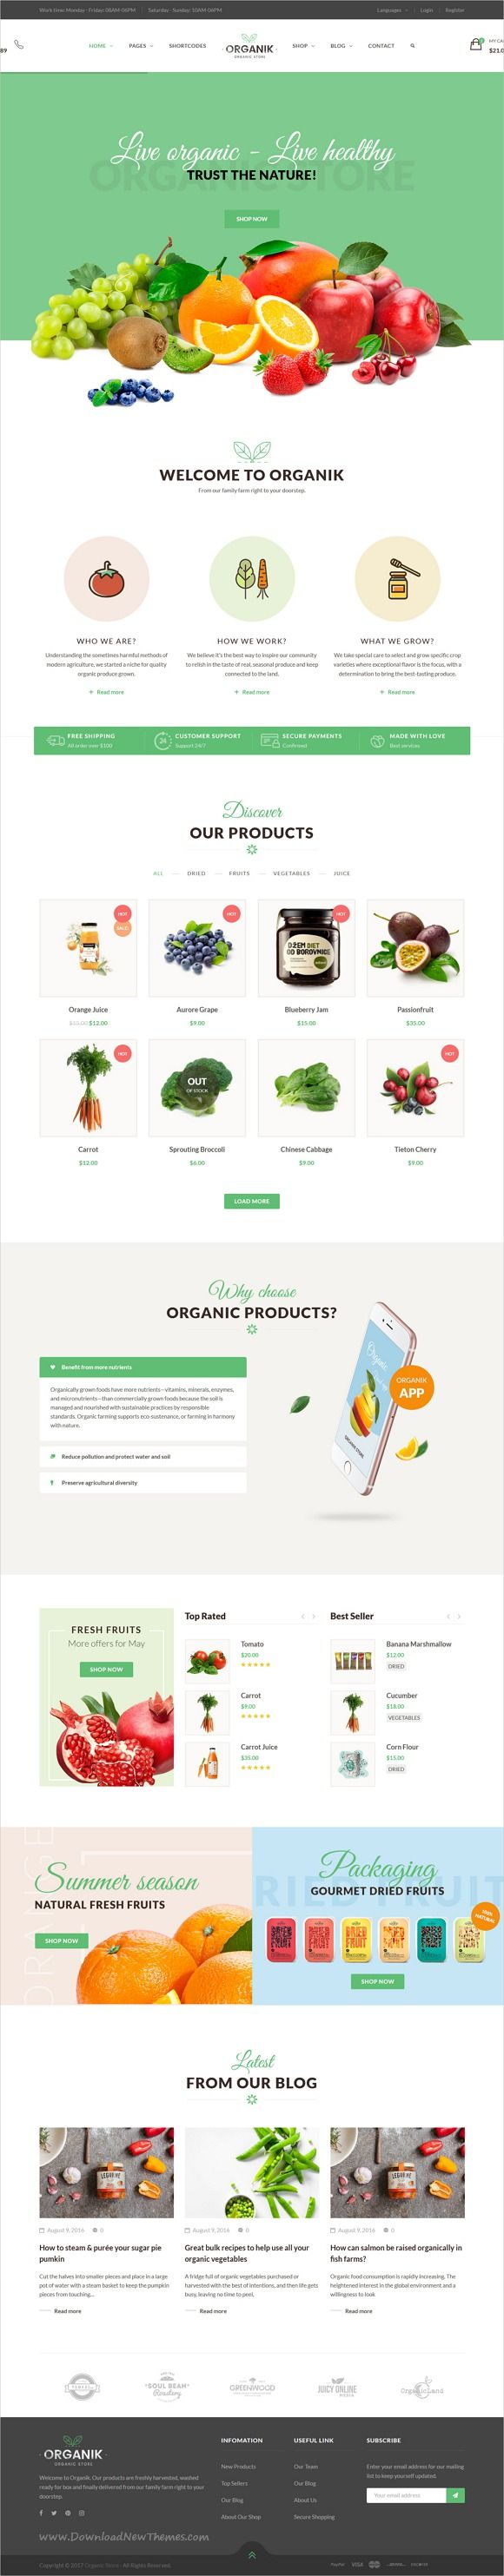 Organik is clean and modern design 6in1 responsive #bootstrap template for #organic store, farm and bakery #eCommerce website download now..